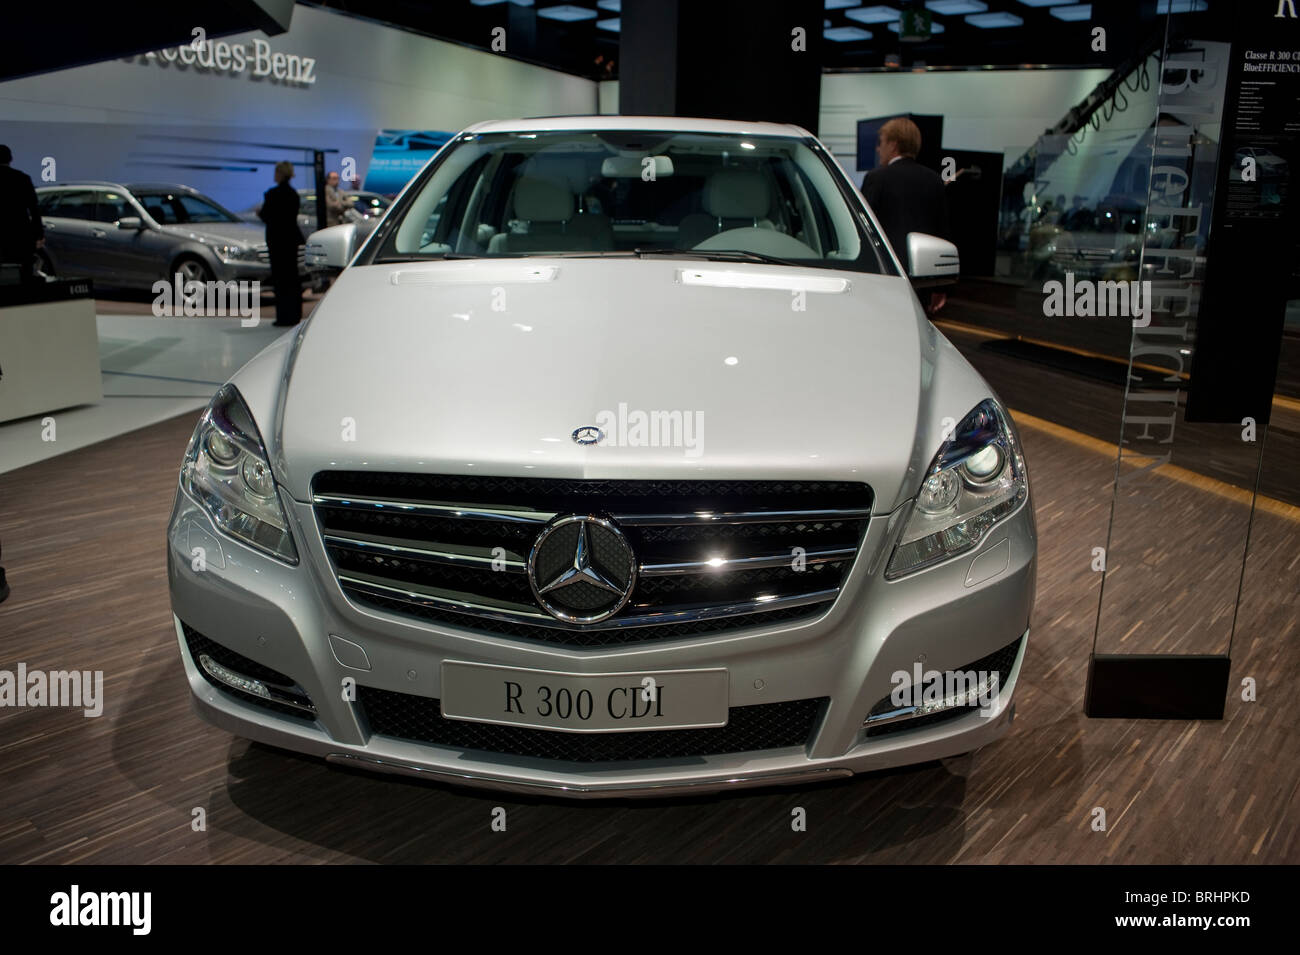 Paris, France, Paris Car Show, Mercedes Benz, R 300 CDI, Stock Photo